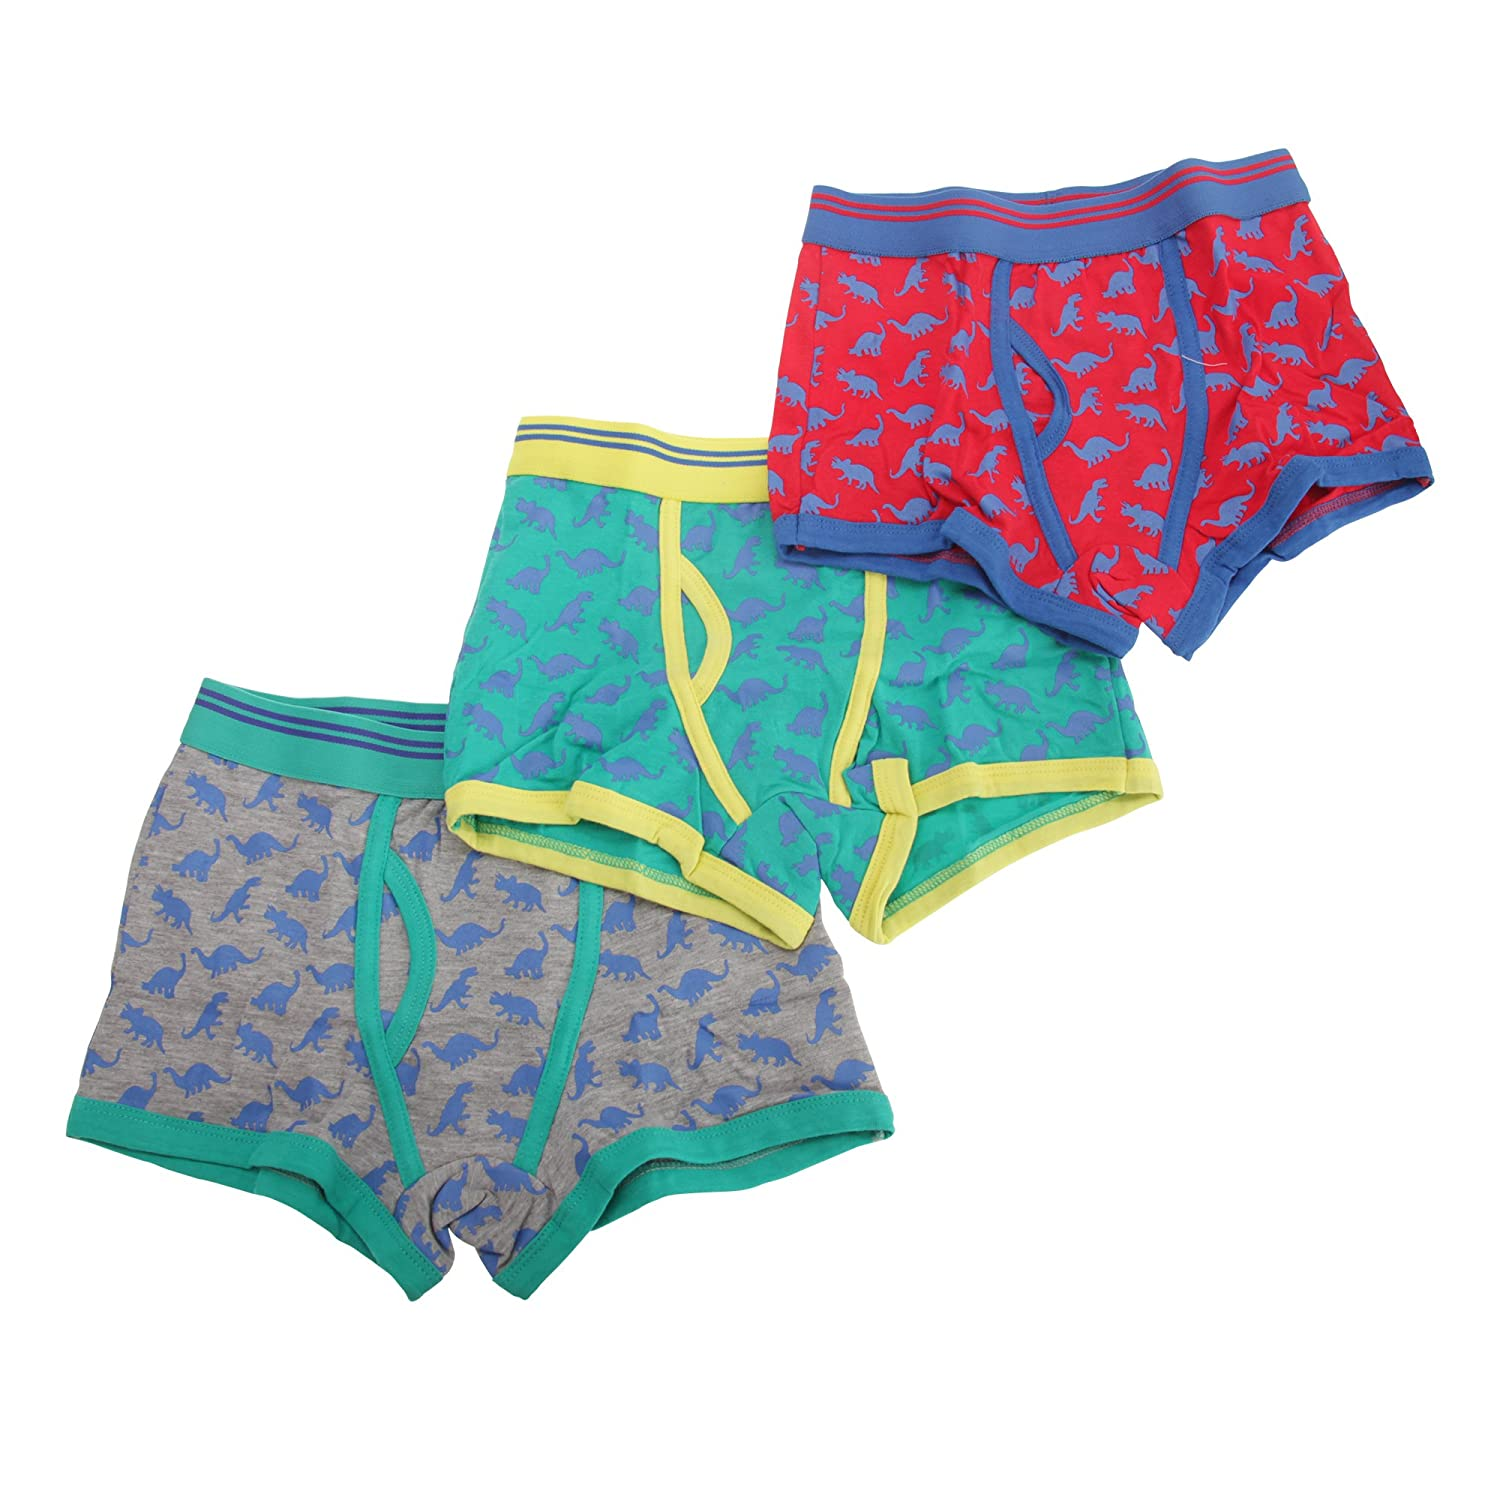 Universal Textiles Childrens/Boys Cotton Rich Trunk Fit Boxers (Pack of 3)